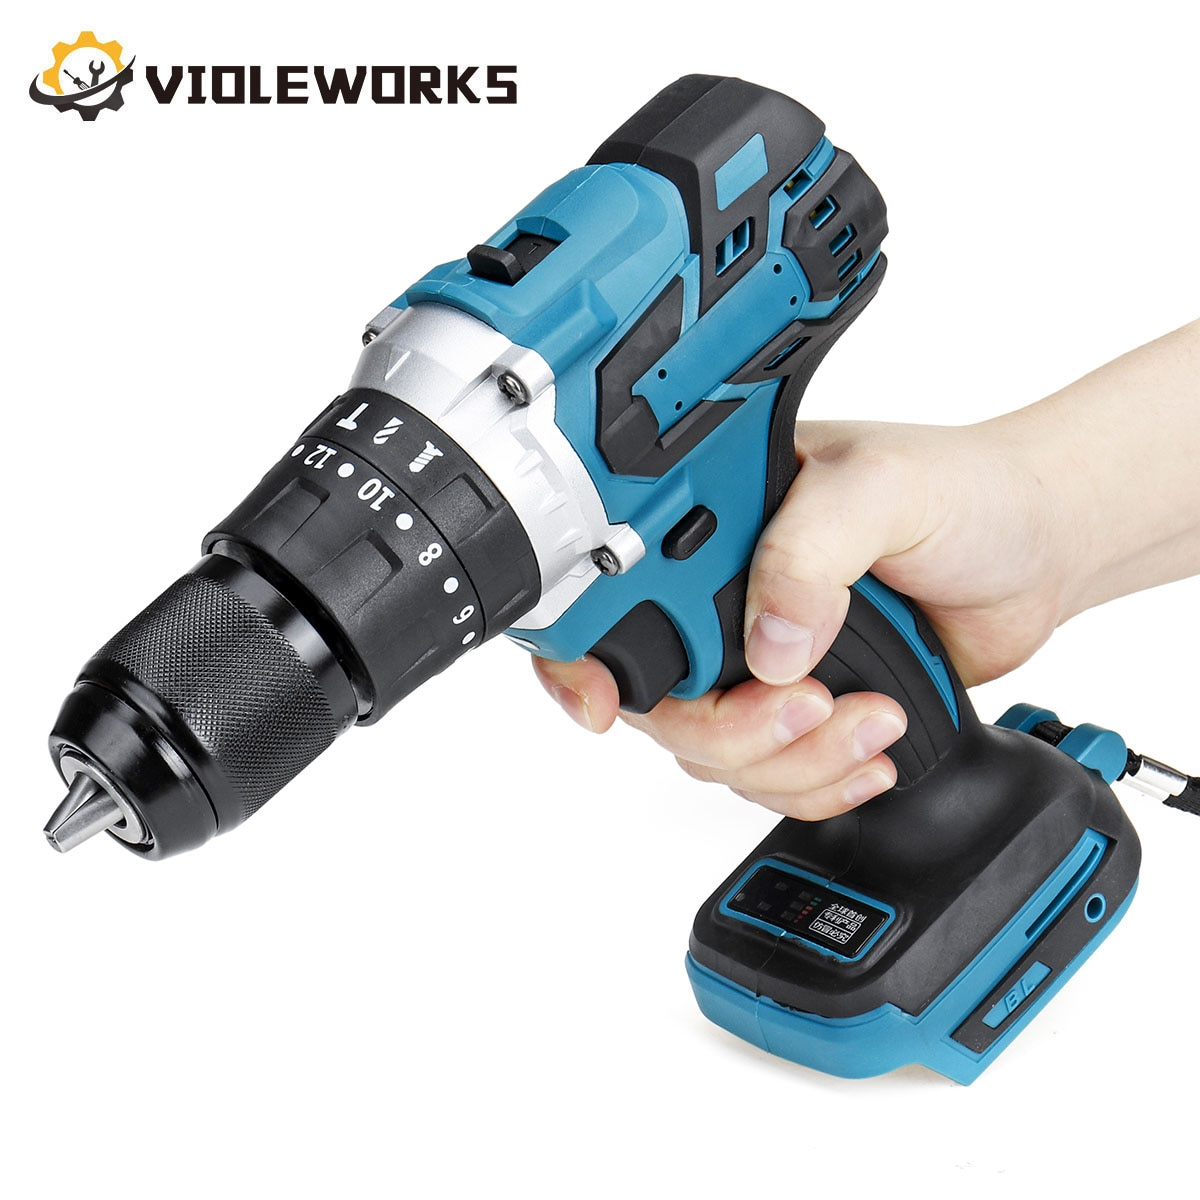 3 In 1 13mm Brushless Electric Hammer Drill Electric Screwdriver 20+3 Torque Cordless Impact Drill for Makita 18V Battery 3 in 1 13mm brushless electric hammer drill electric screwdriver 20 3 torque cordless impact drill for makita 18v battery